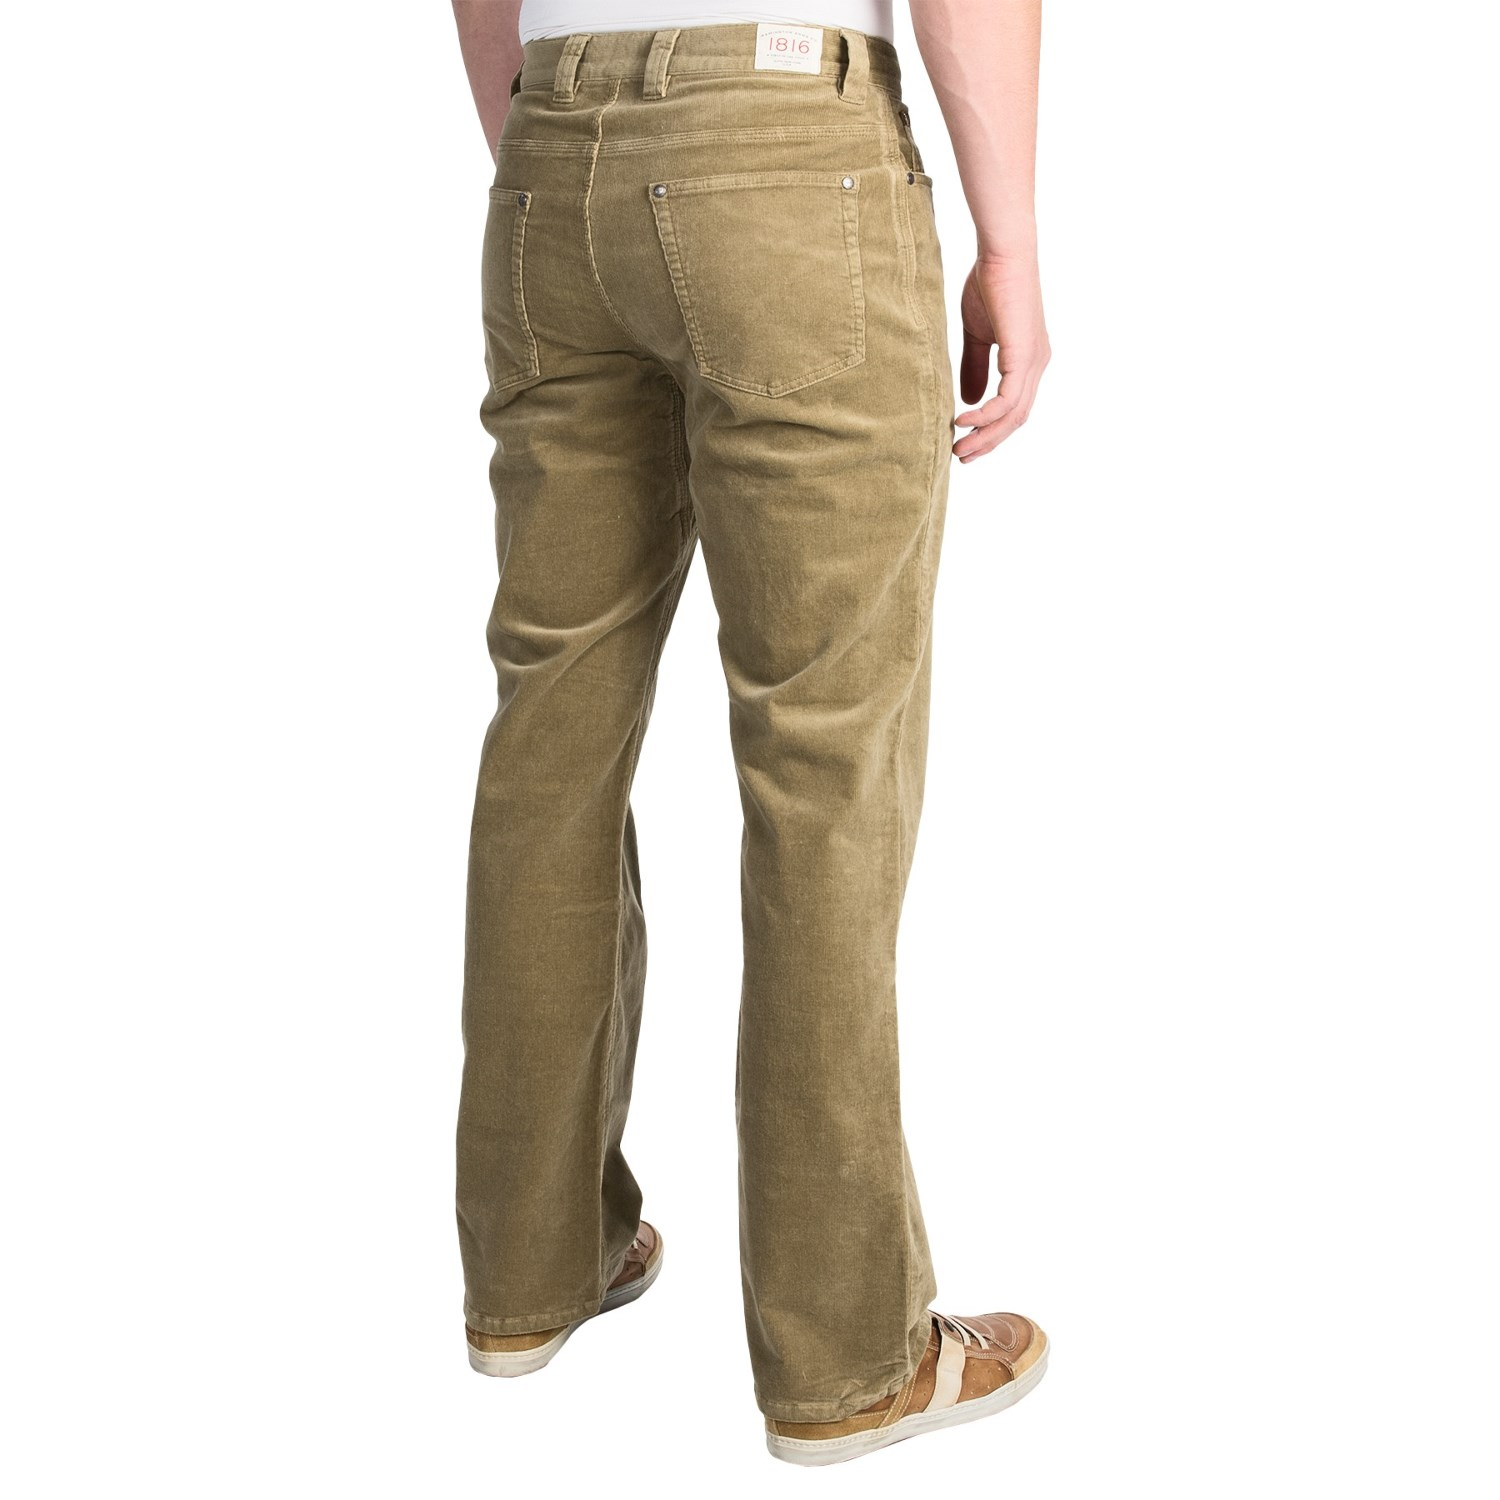 1816-by-remington-camp-perry-corduroy-pants-relaxed-fit-for-men~a~9910j_2~1500.1.jpg